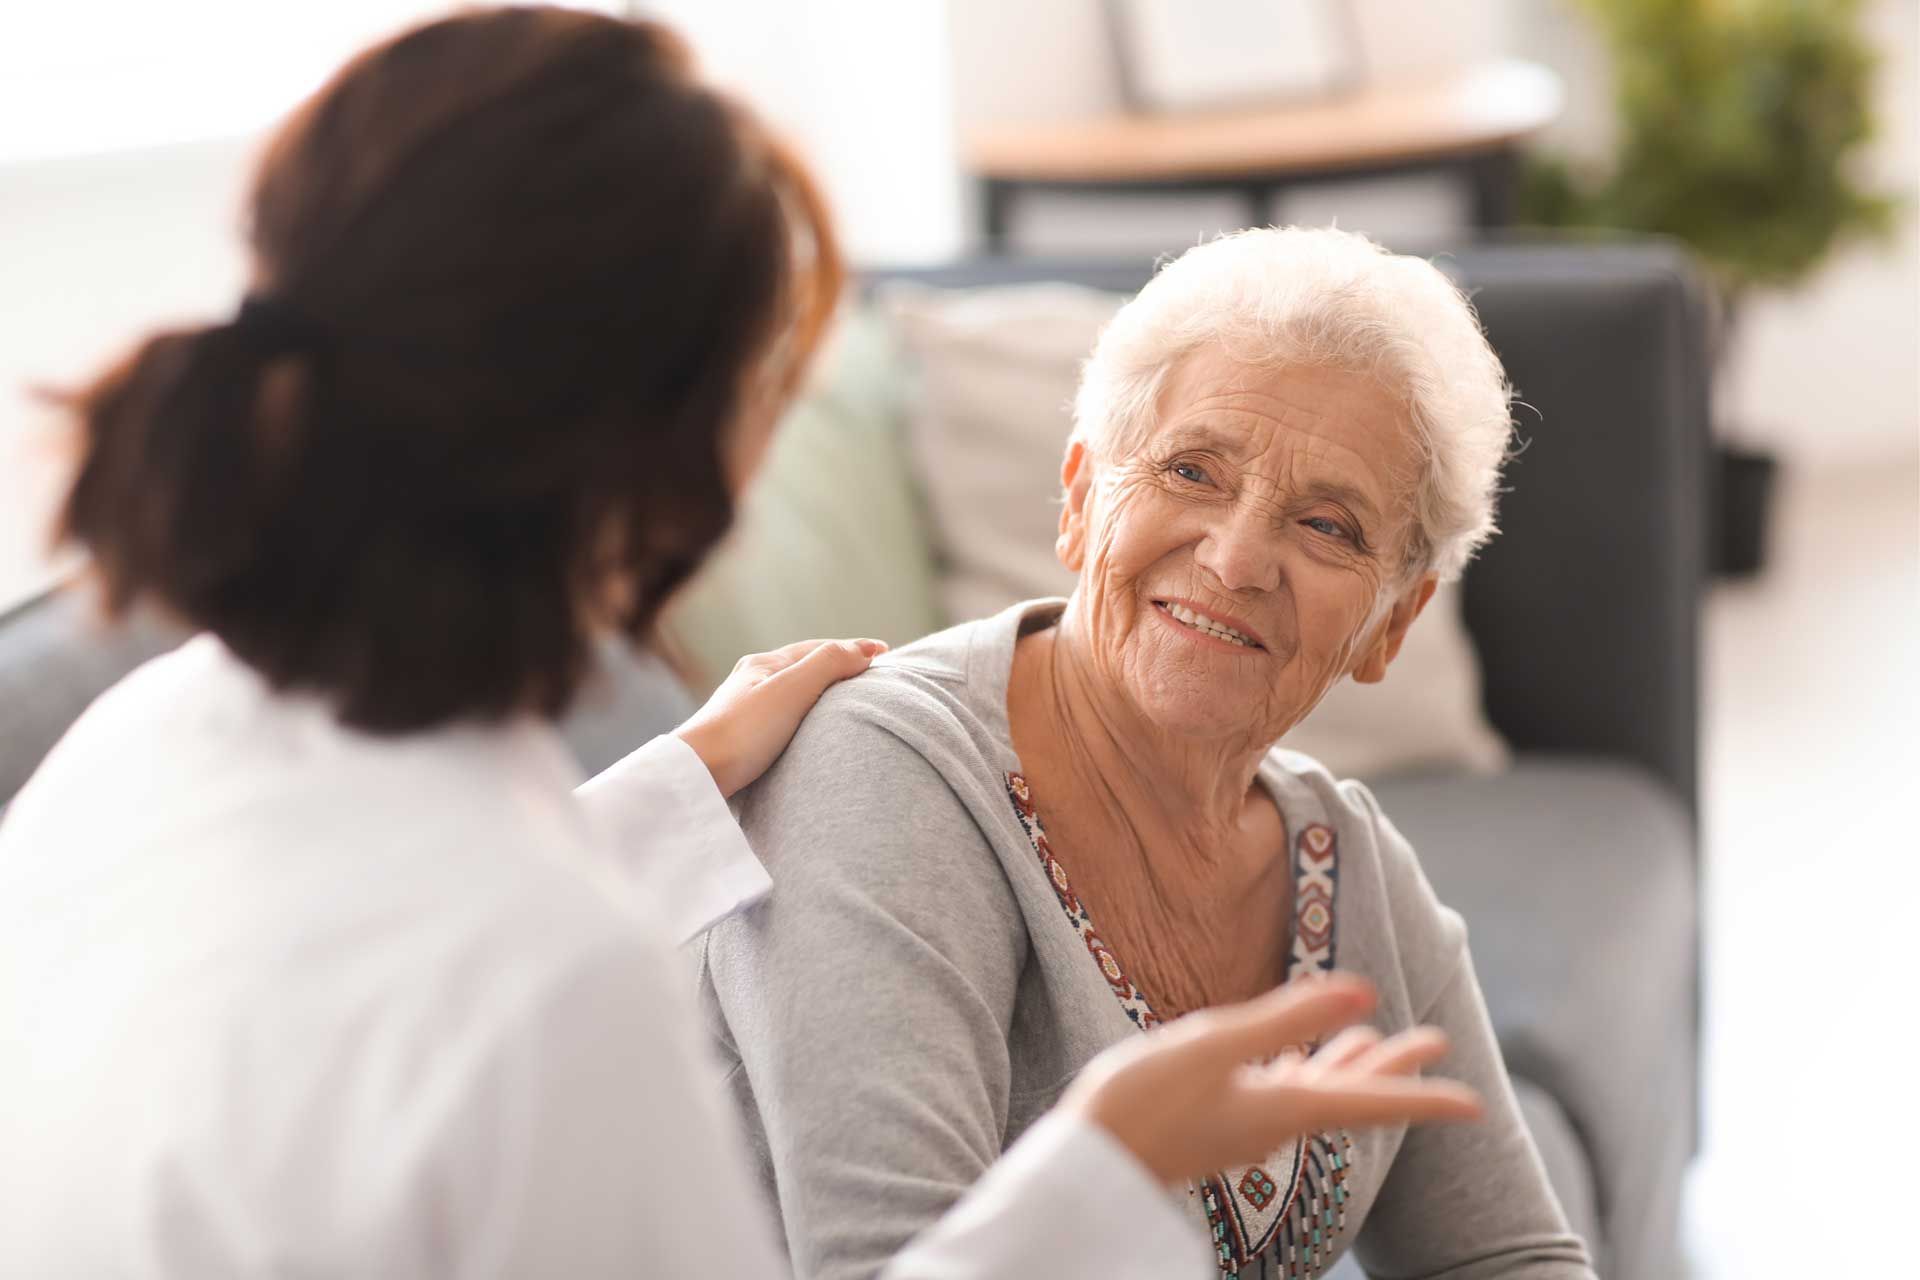 a doctor talking to an elderly patient